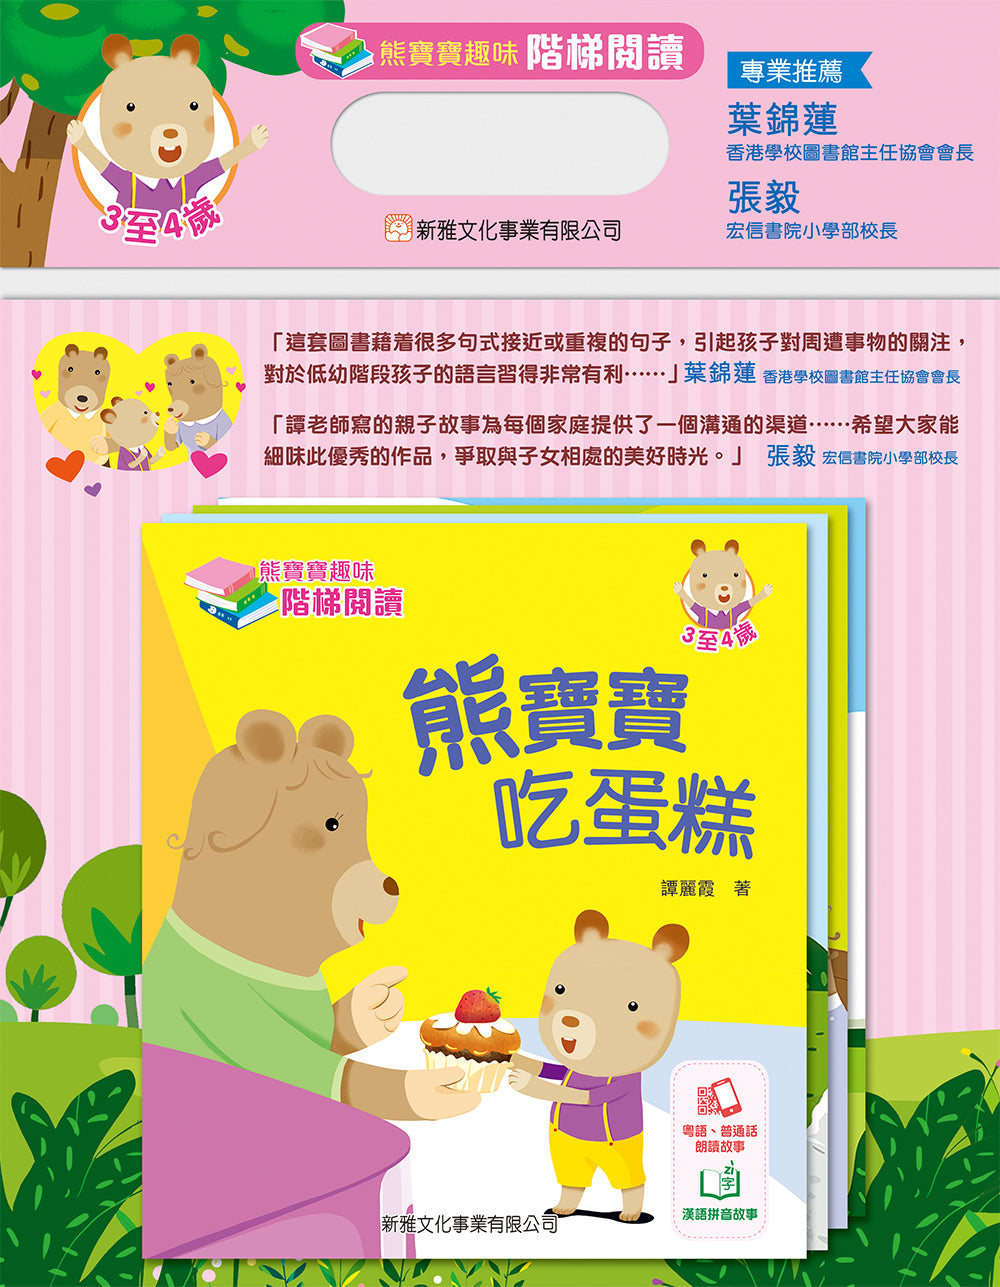 Baby Bear's Leveled Reader Set #1 (Bilingual with Cantonese/Mandarin Audio) • 熊寶寶趣味階梯閱讀 (3至4歲)